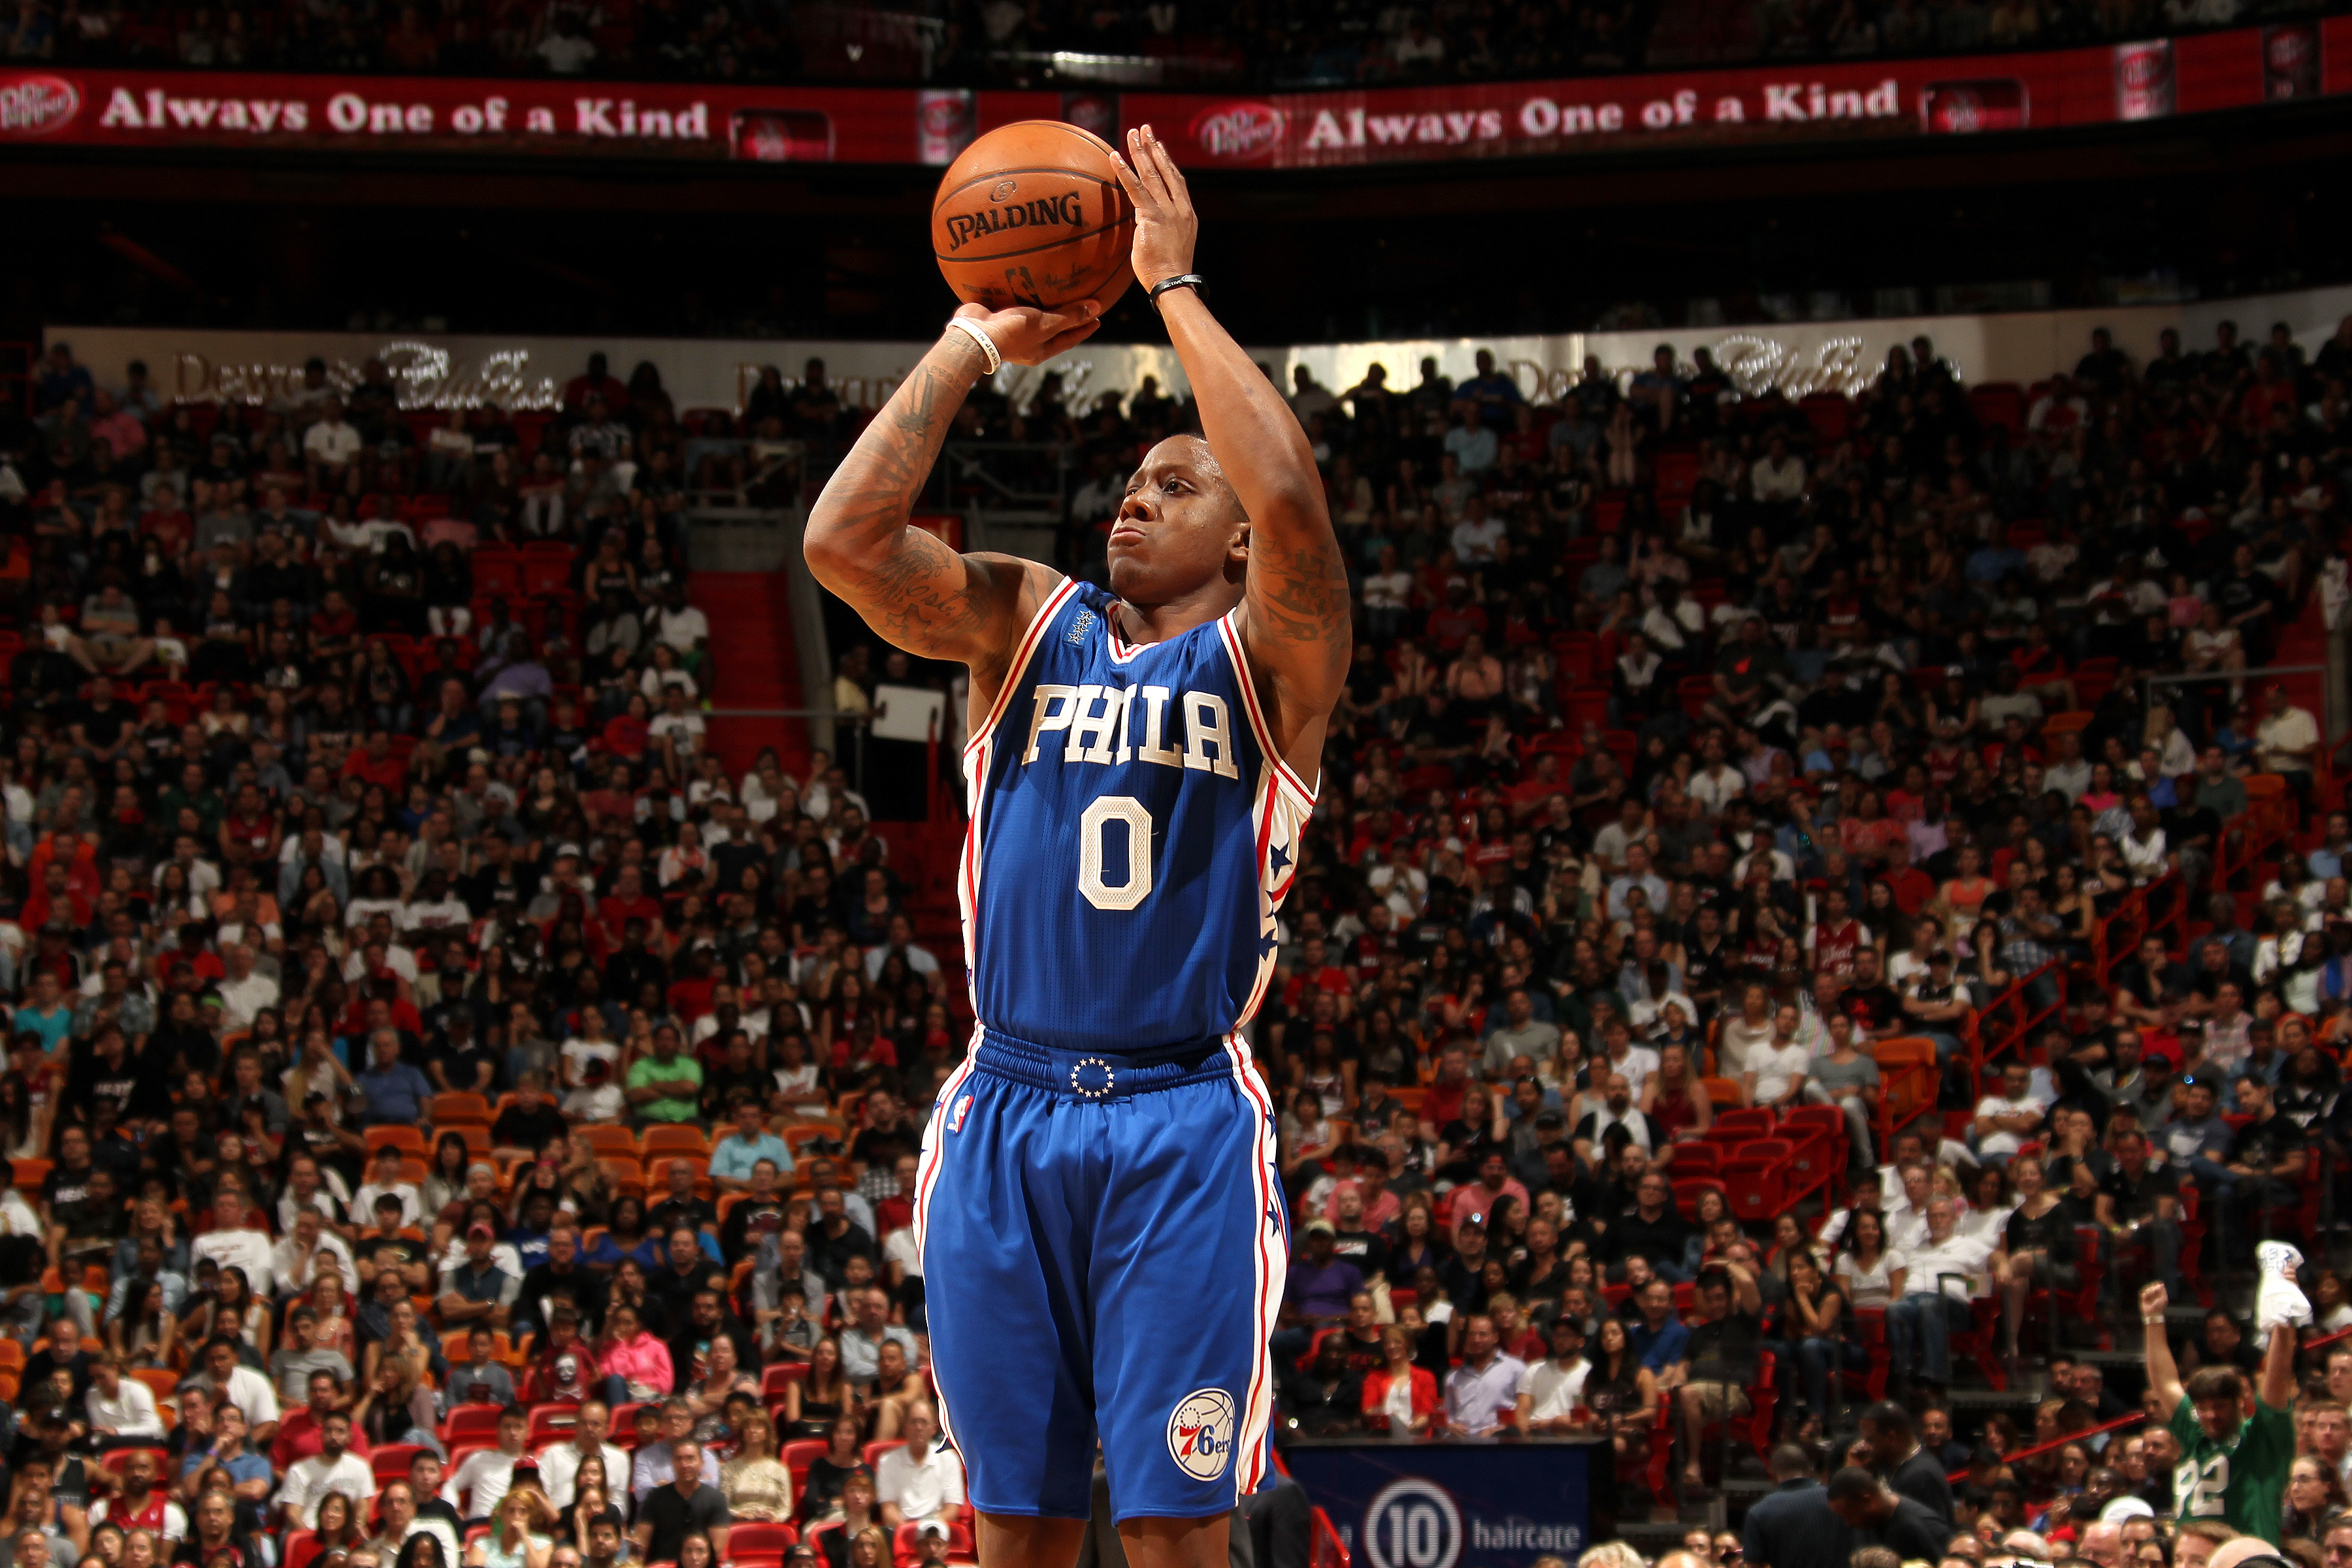 MIAMI, FL - MARCH 6: Isaiah Canaan #0 of the Philadelphia 76ers shoots the ball during the game against the Miami Heat on March 6, 2016 at AmericanAirlines Arena in Miami, Florida. (Photo by Issac Baldizon/NBAE via Getty Images)